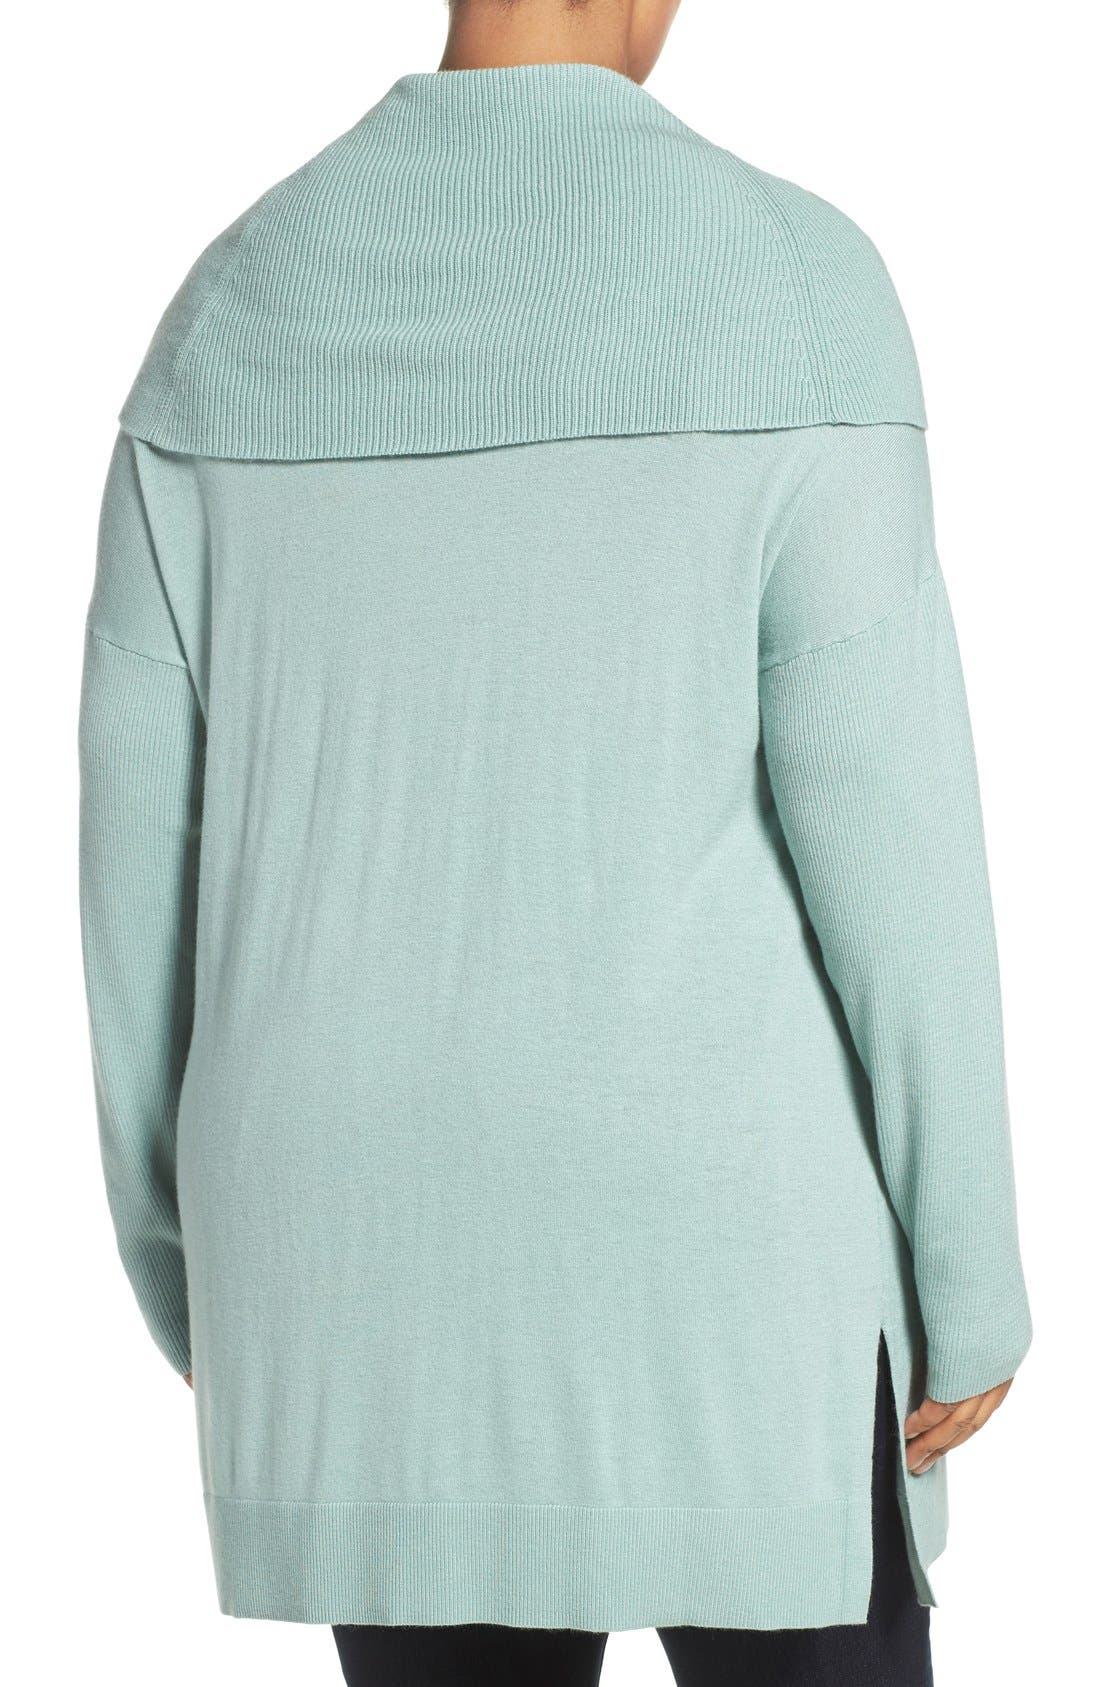 Cowl Neck Tunic Sweater,                             Alternate thumbnail 16, color,